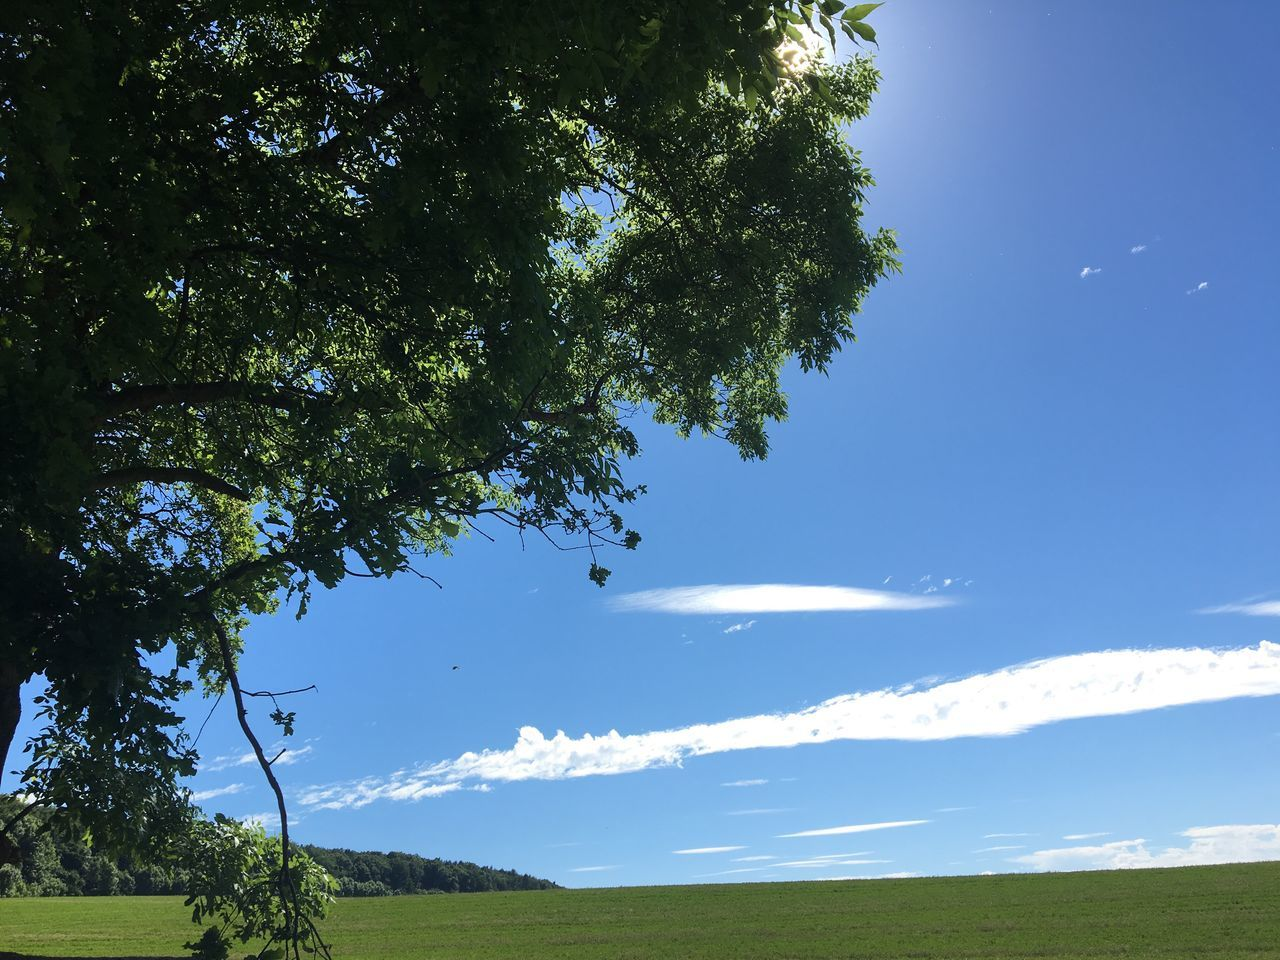 tree, nature, tranquil scene, beauty in nature, scenics, tranquility, growth, landscape, day, idyllic, field, green color, sky, outdoors, sunlight, no people, grass, branch, blue sky